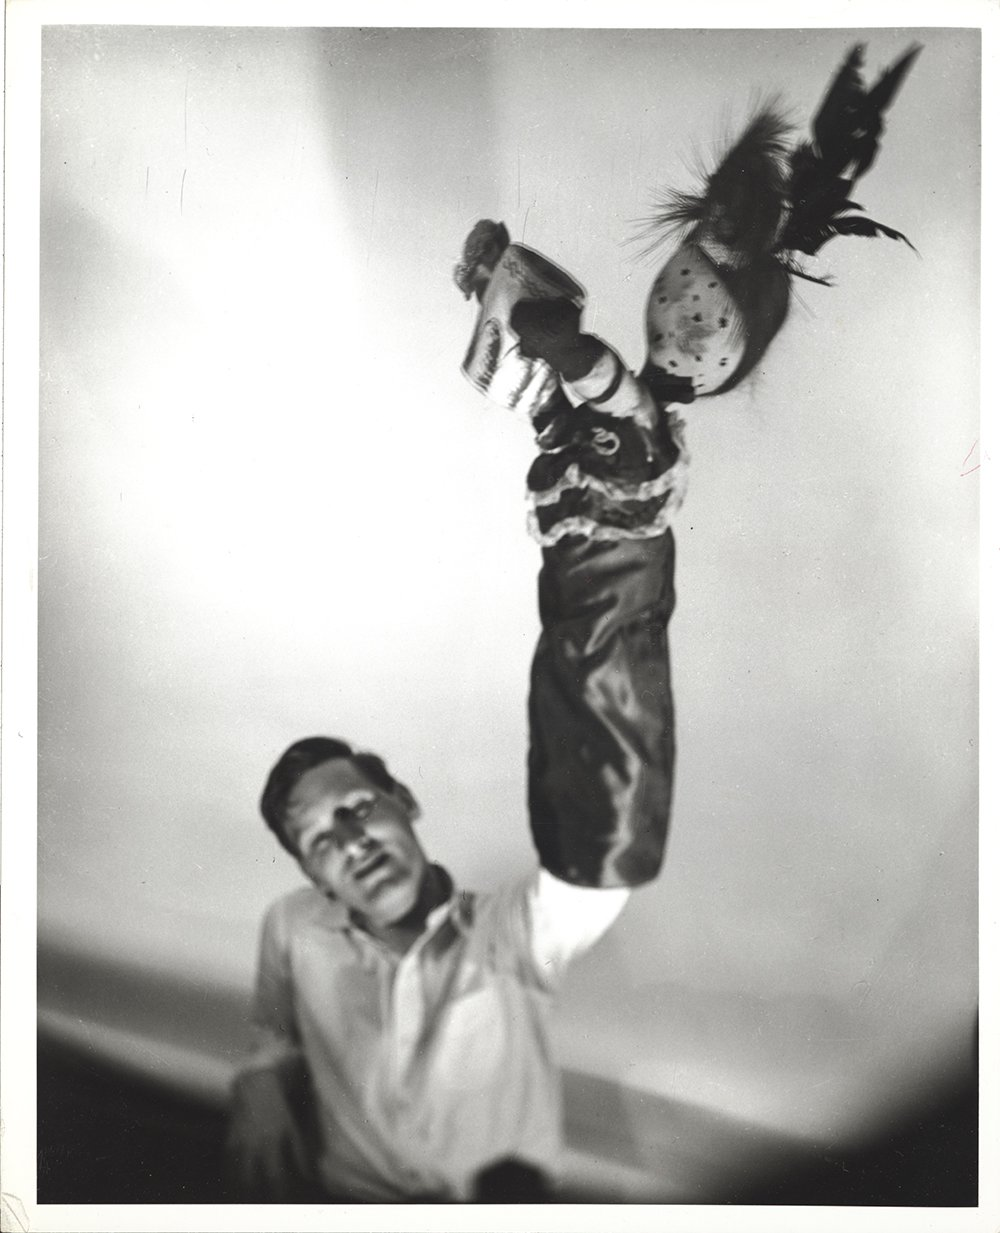 Blurry black and white photo of a man sitting in a chair wearing a white shirt and holding up a large puppet that resembles a bird.